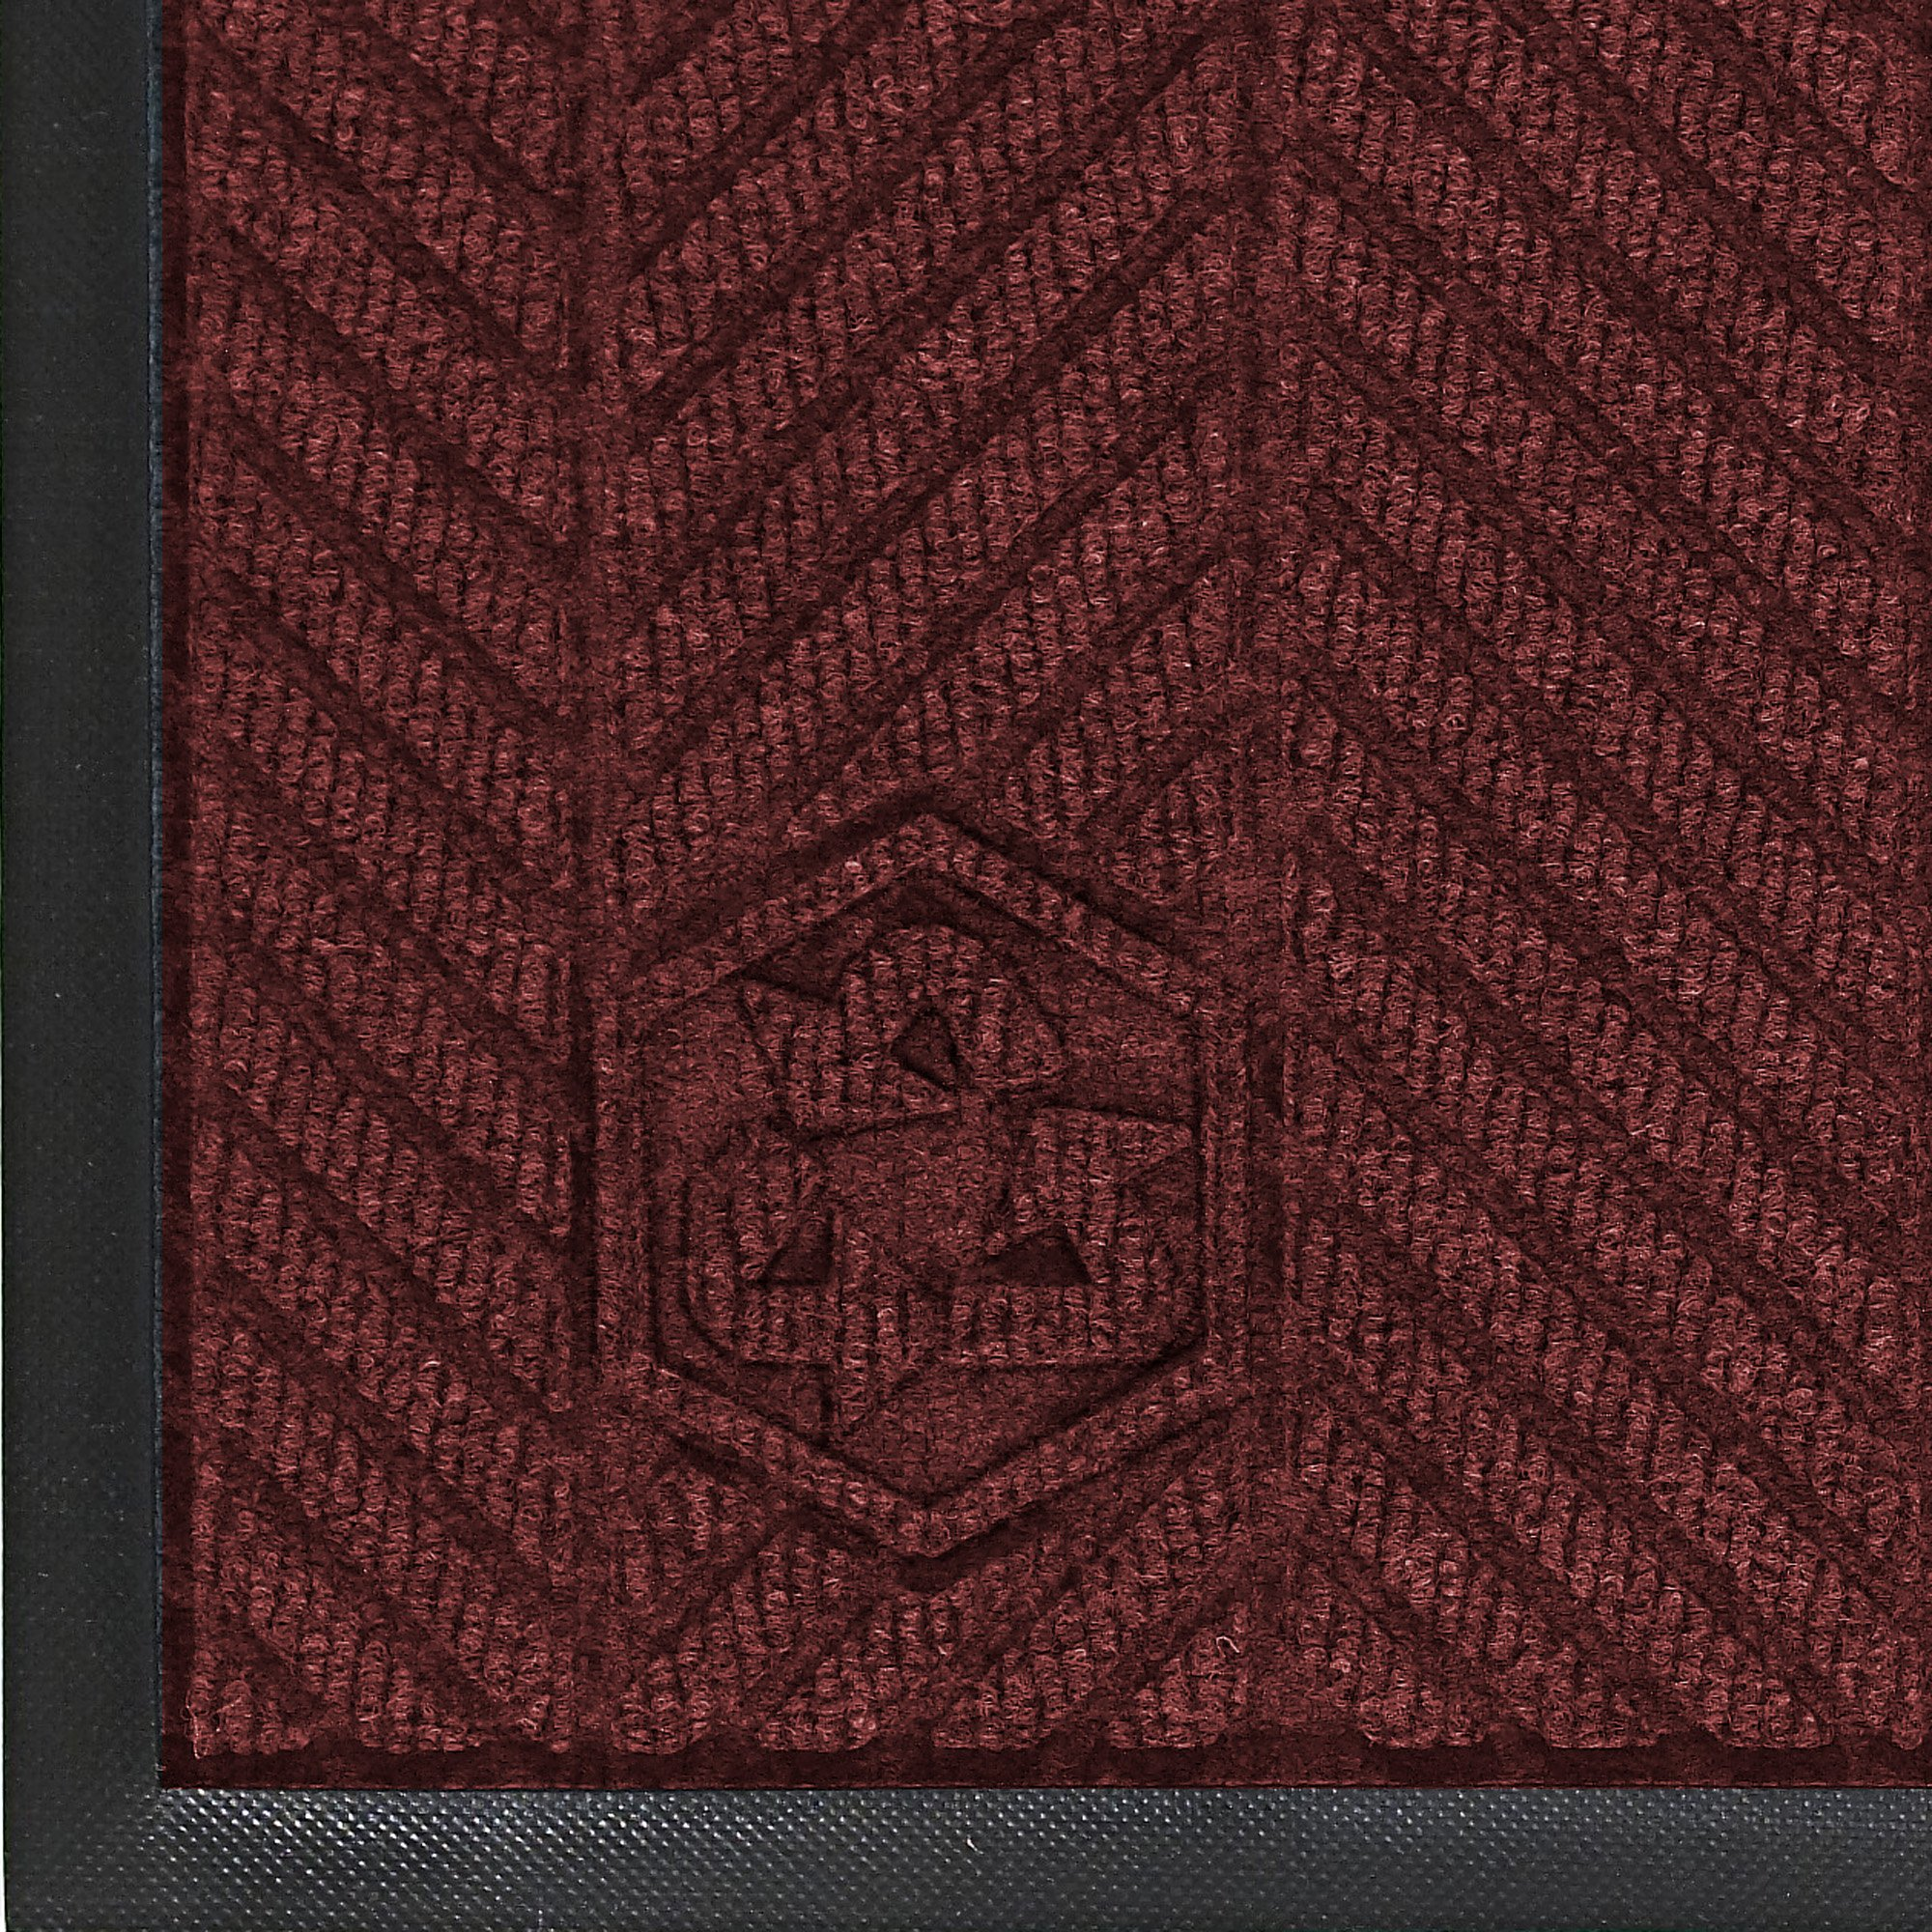 Andersen 2240 Waterhog Eco Elite PET Polyester Fiber Indoor/Outdoor Floor Mat, SBR Rubber Backing, 8.4' Length x 3' Width, 3/8'' Thick, Maroon